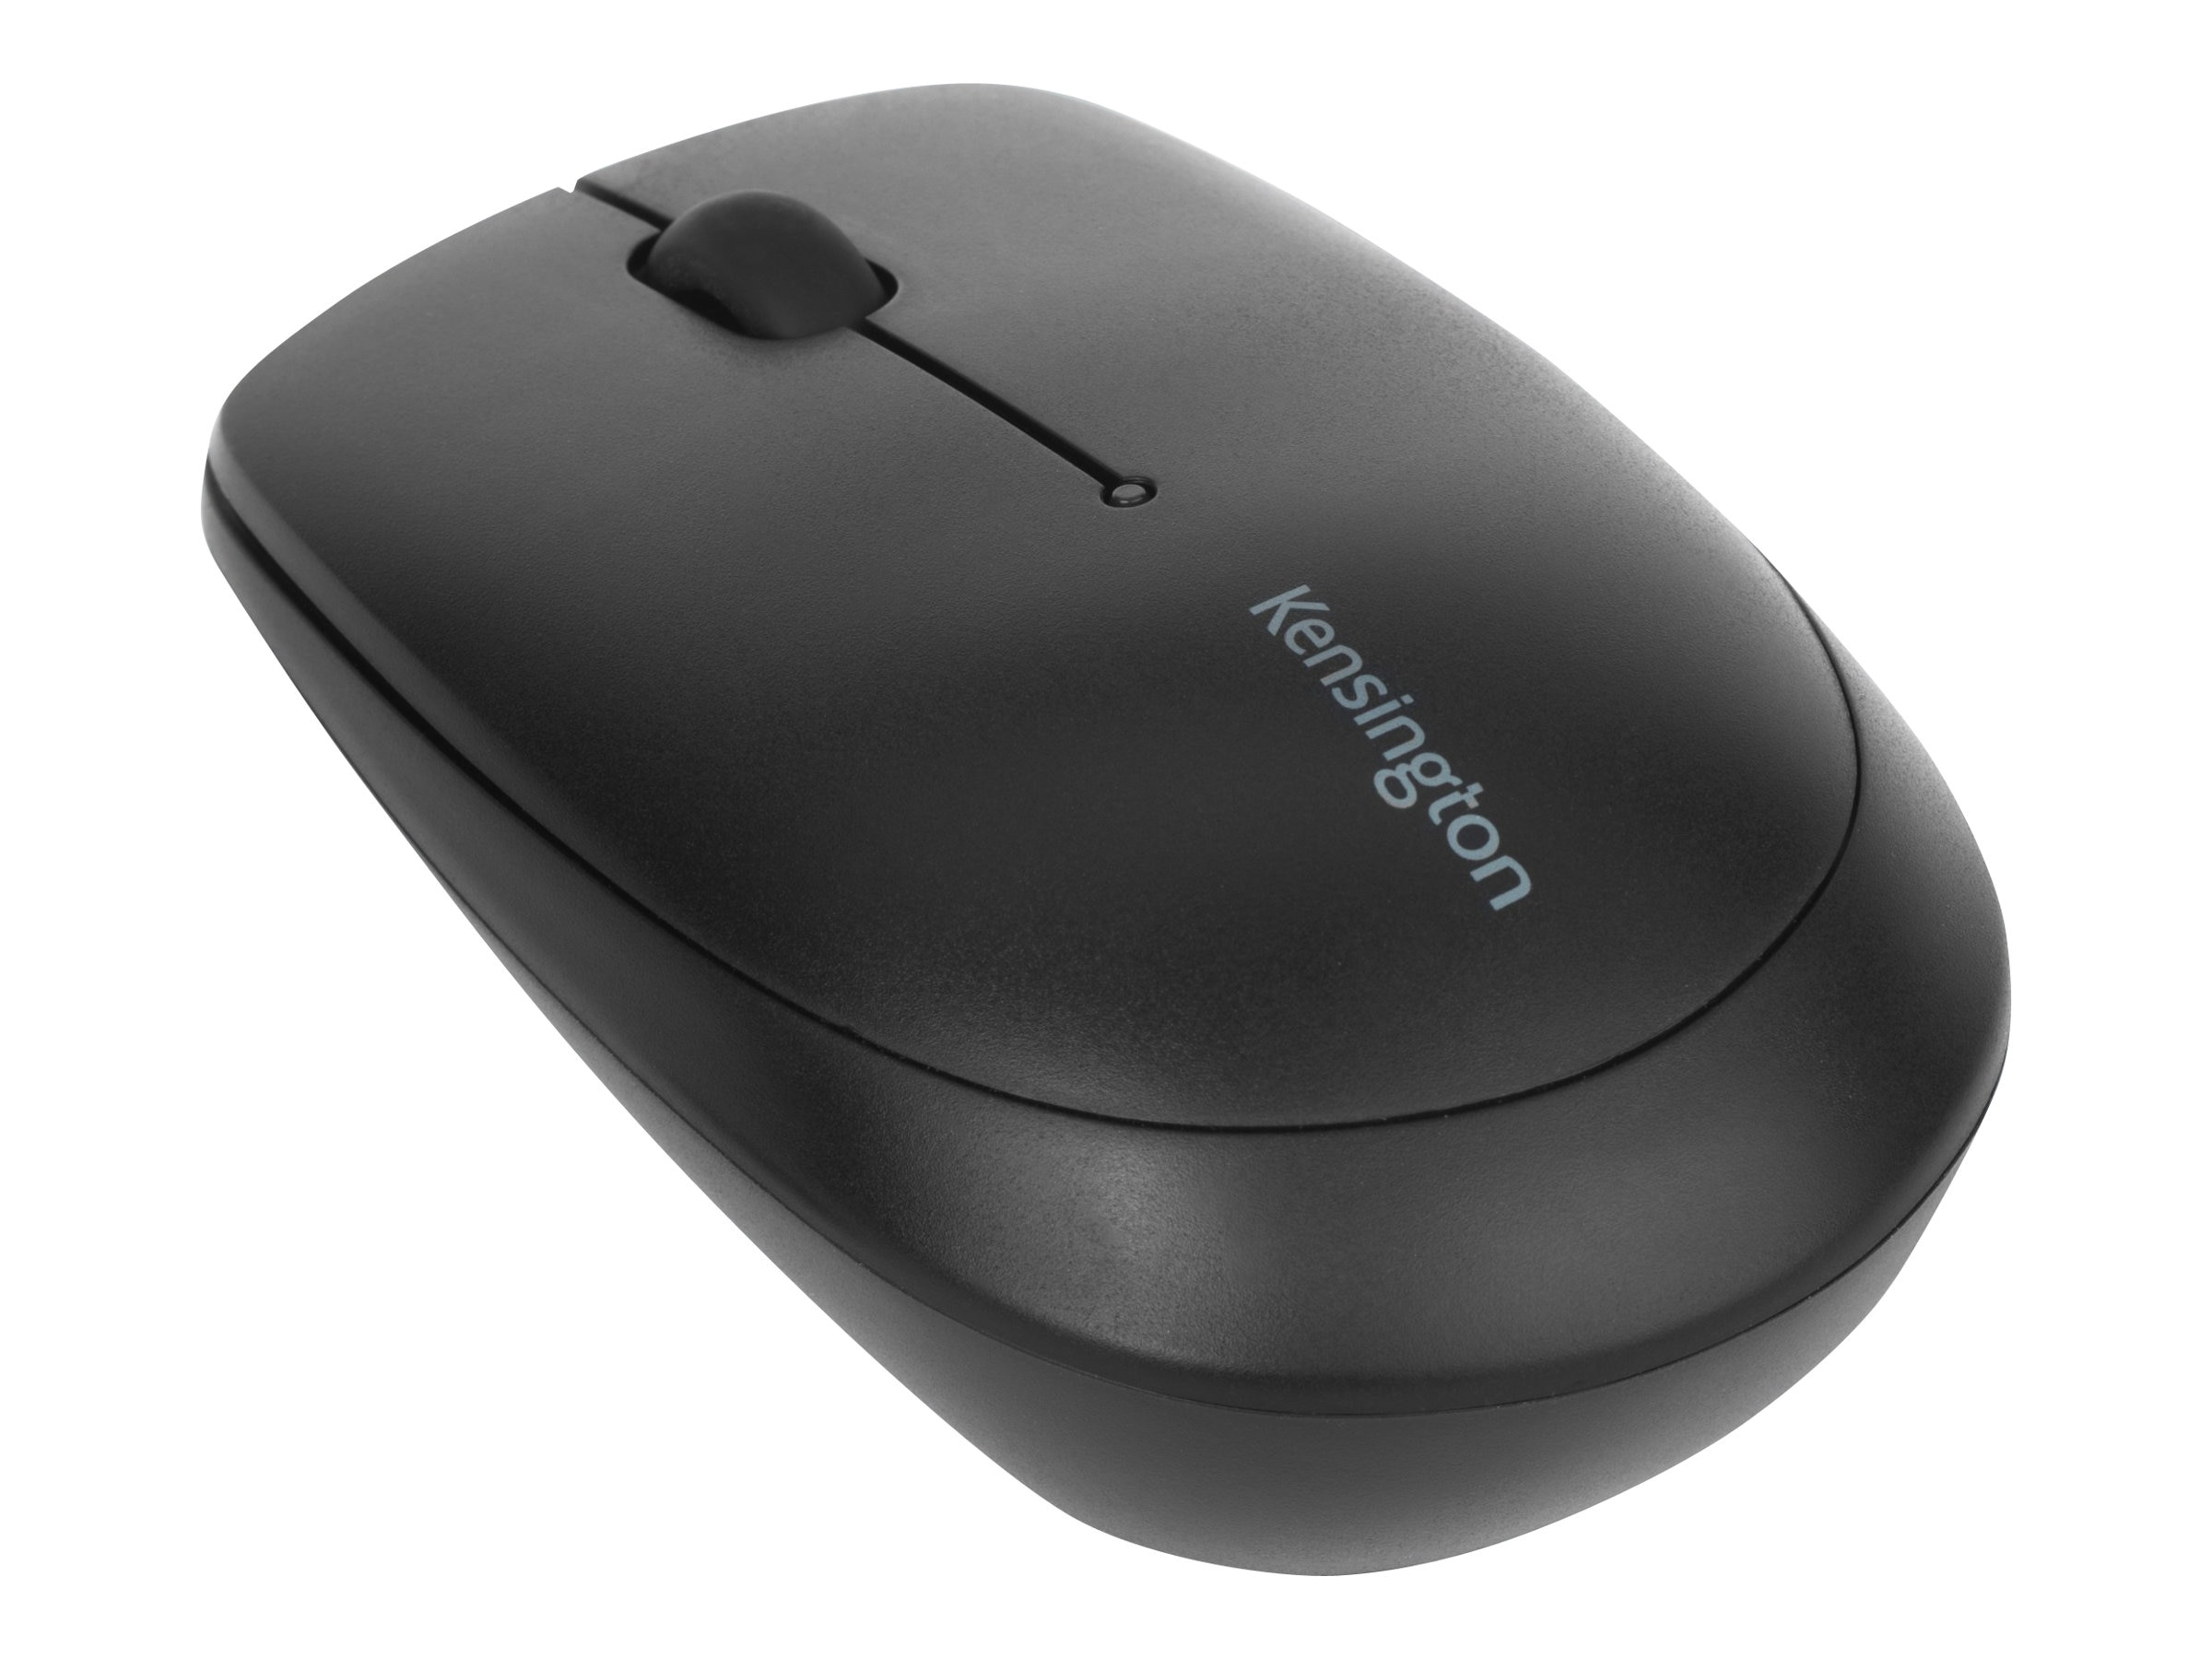 Kensington Pro Fit Bluetooth Mobile Mouse, Black, K72451WW